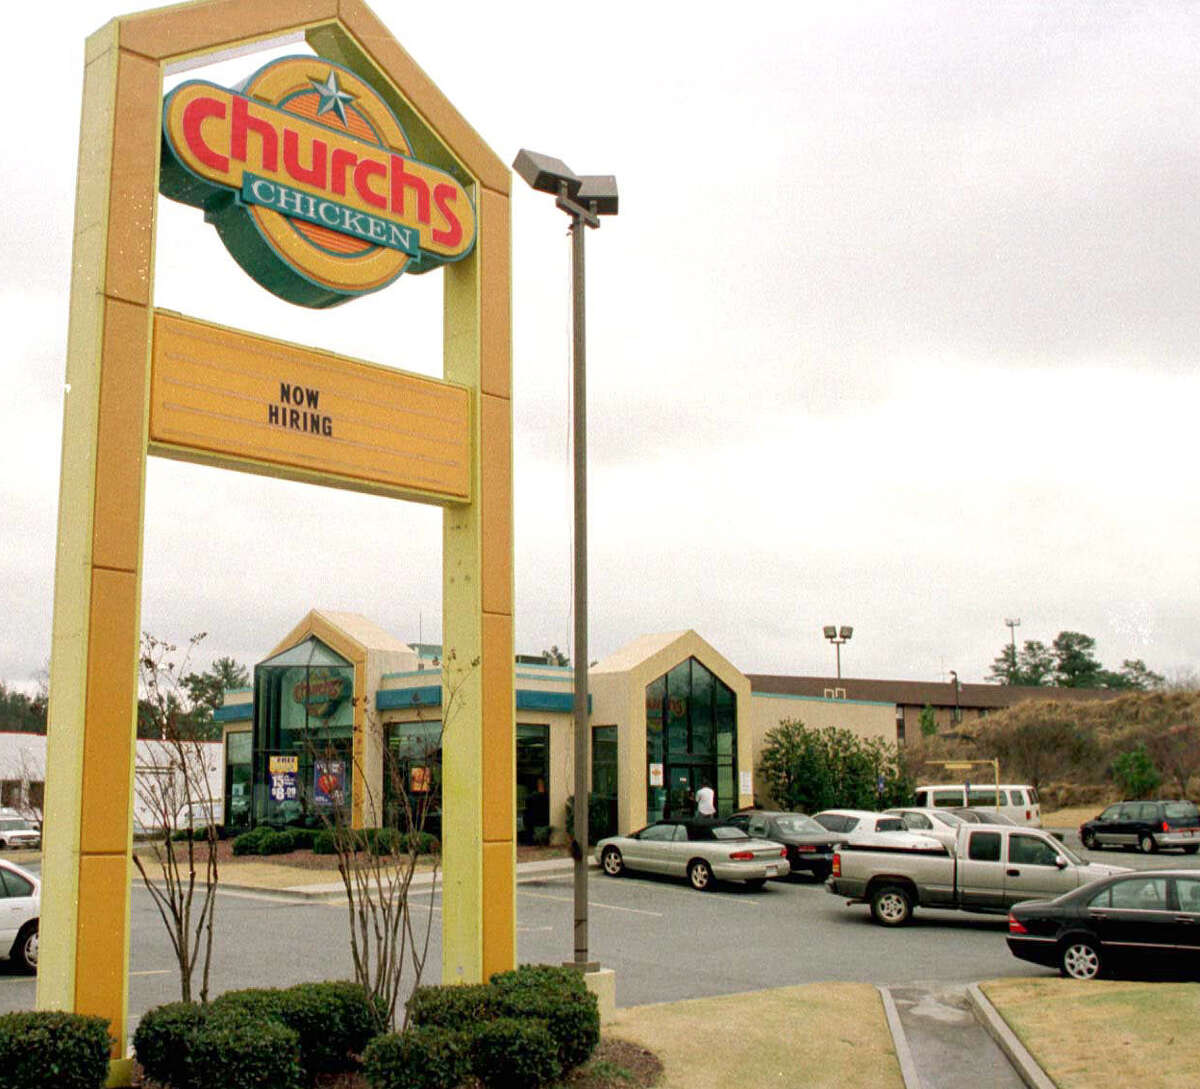 Church's Chicken now operates about 1,700 locations in 26 countries and is based in Sandy Springs, Ga. Many of the foreign locations are called Church's Texas Chicken.